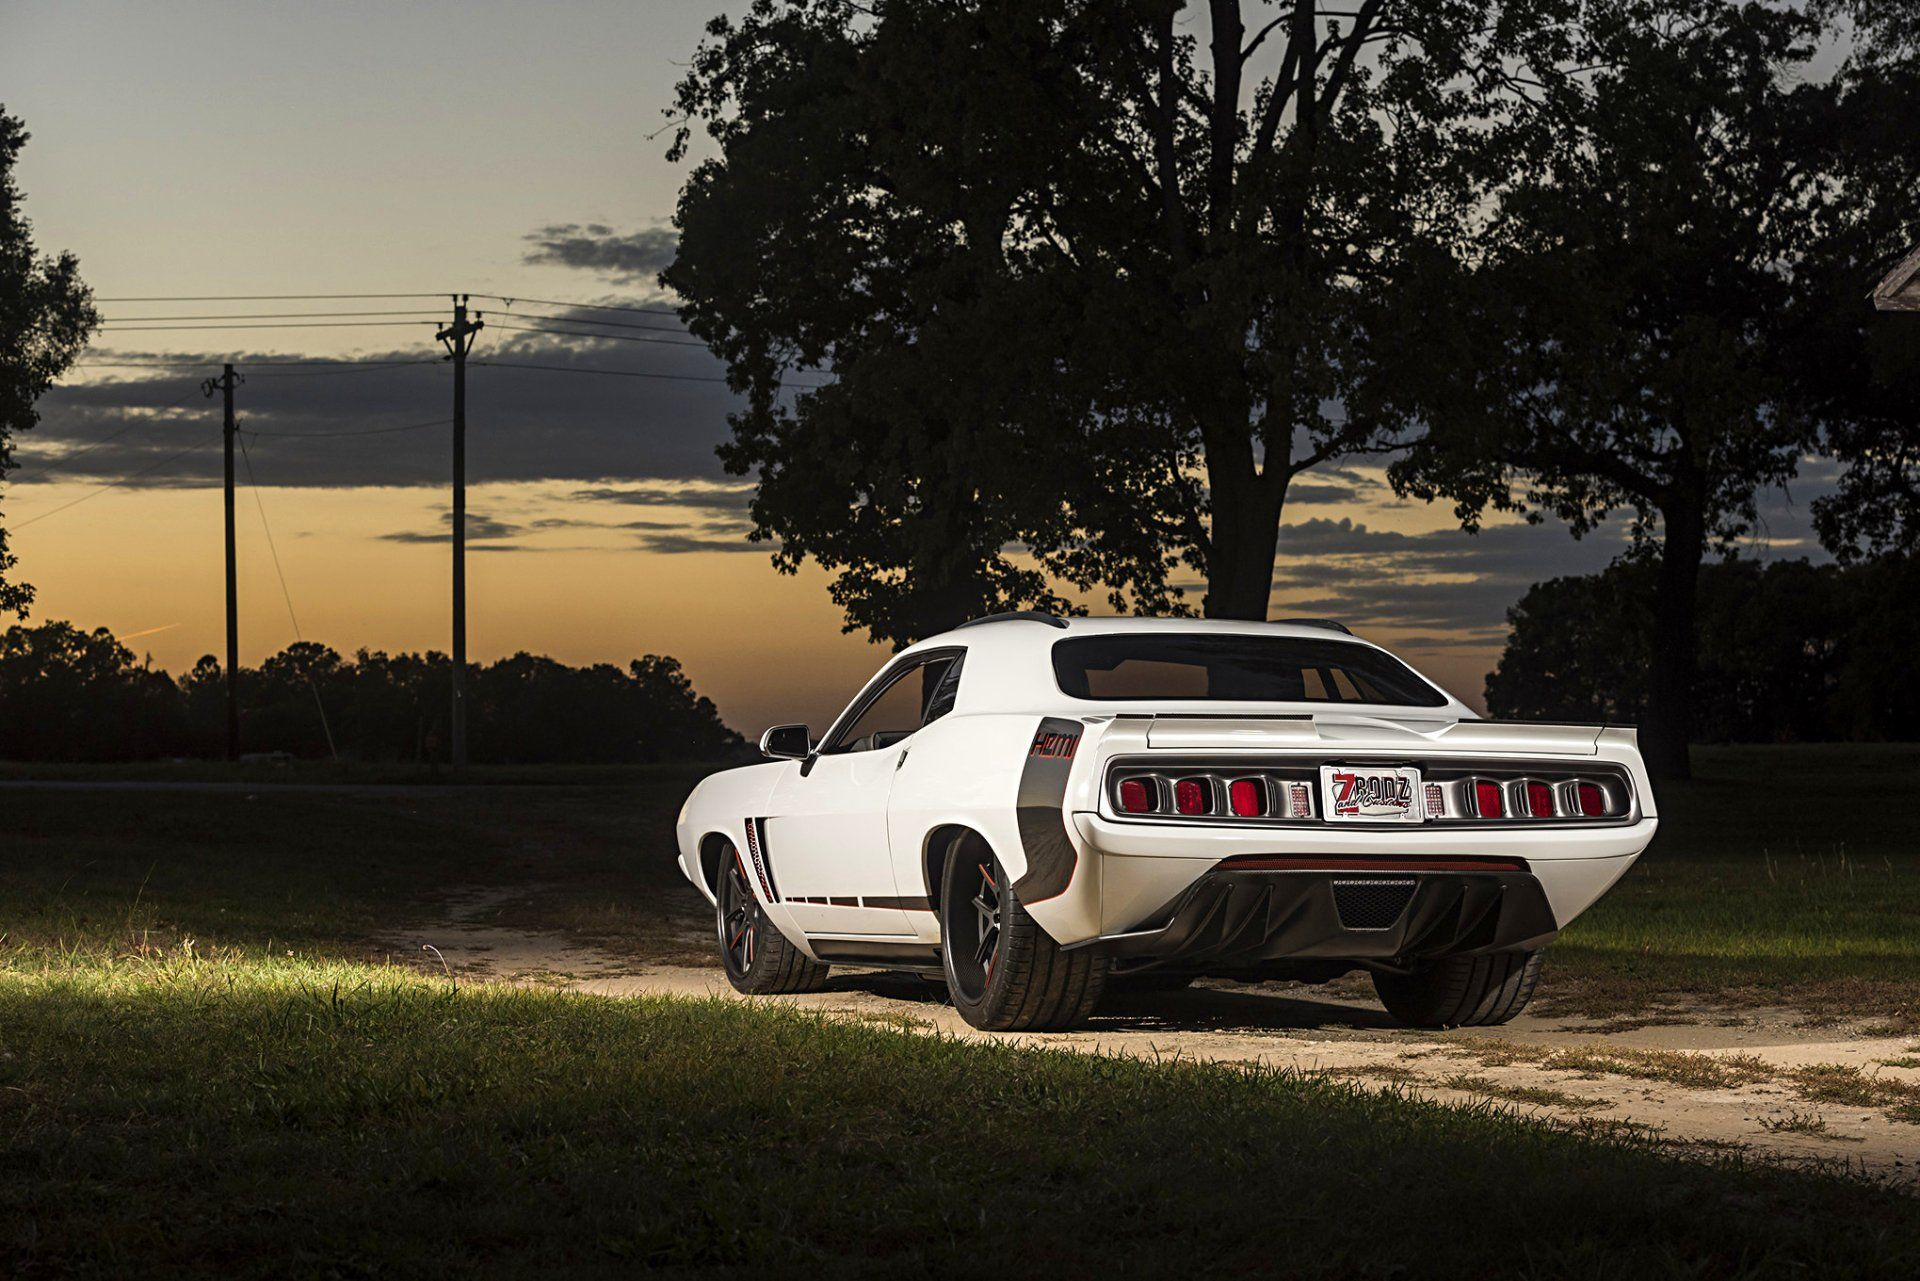 Abstract plymouth barracuda hot rod muscle car mopar - Muscle cars wallpaper hd pack ...